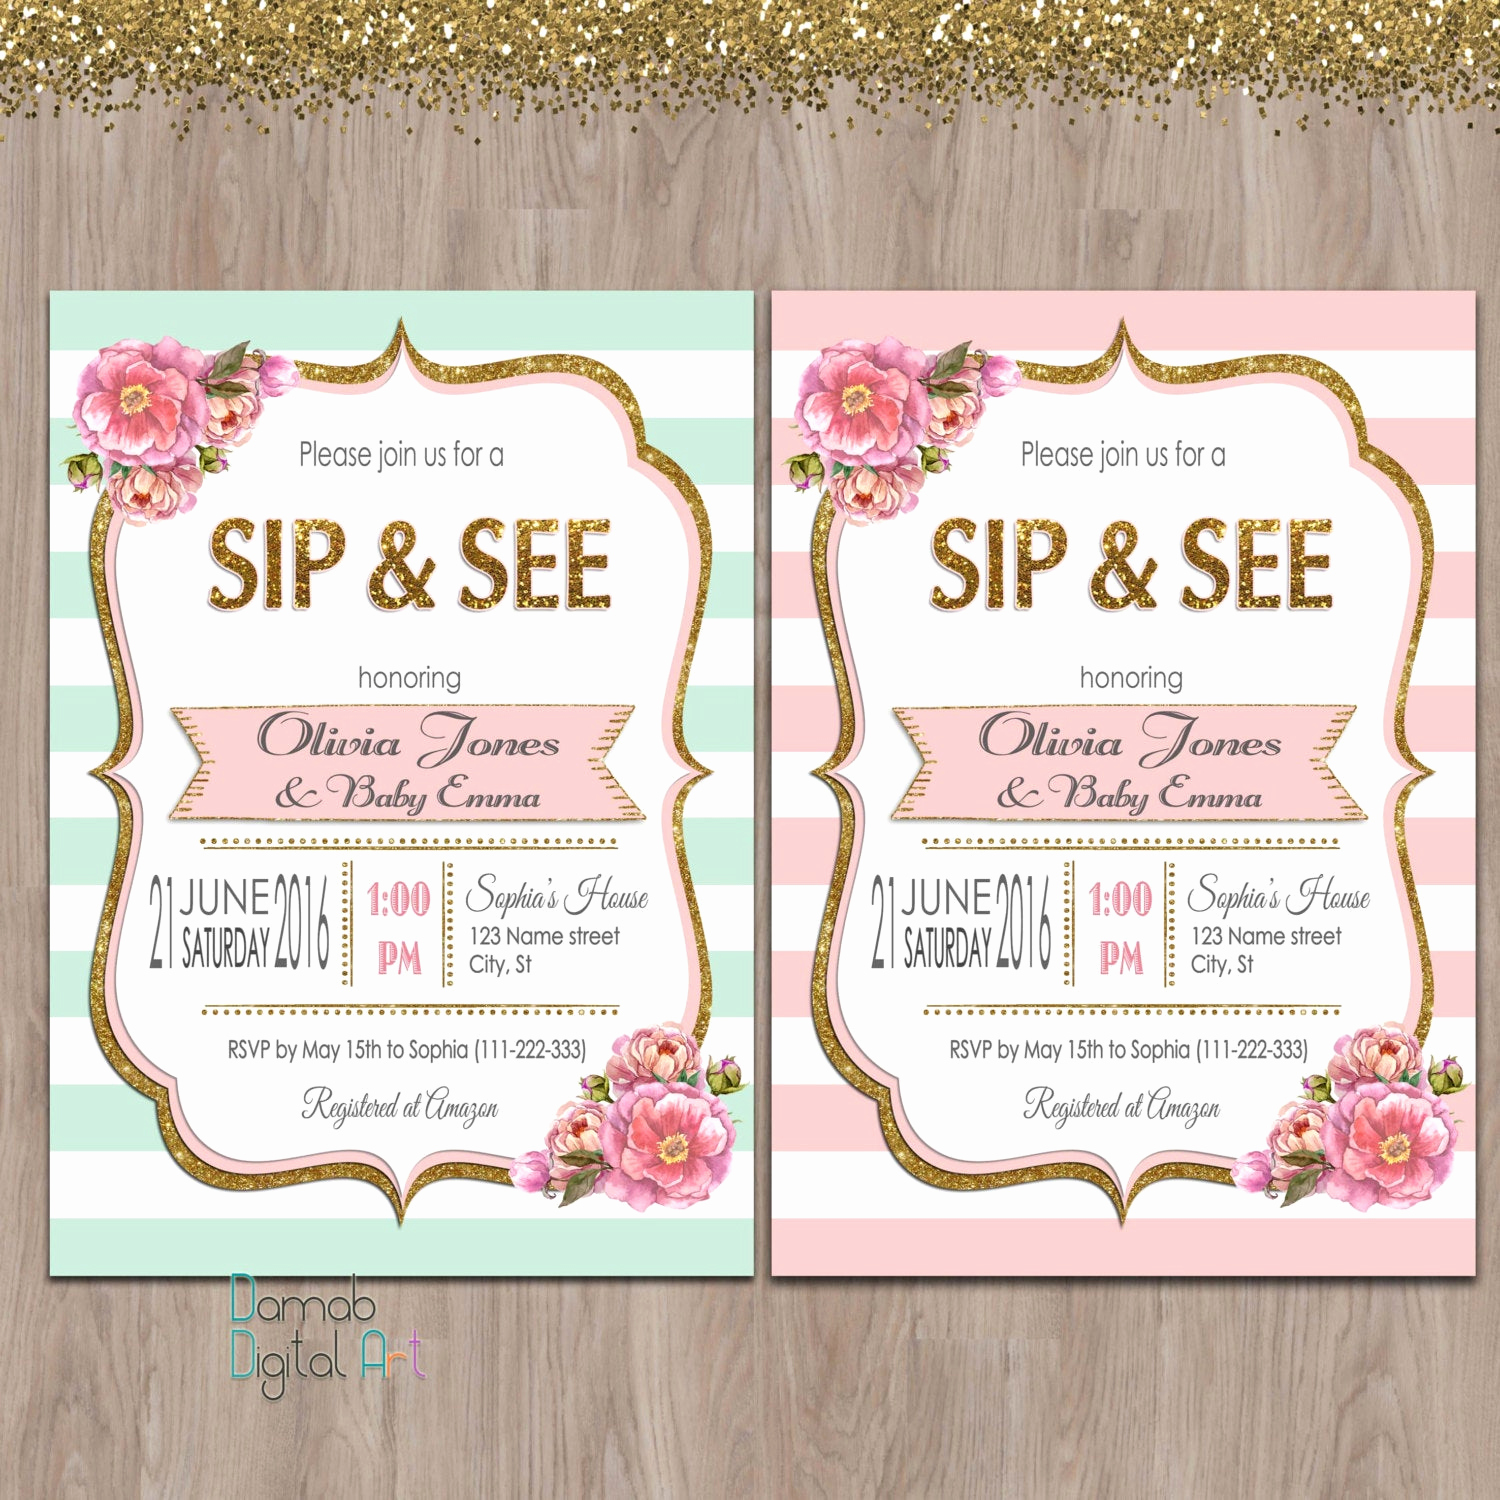 Sip N See Invitation Wording Fresh Sip and See Invitation Girl Sip & See Invitation Meet the